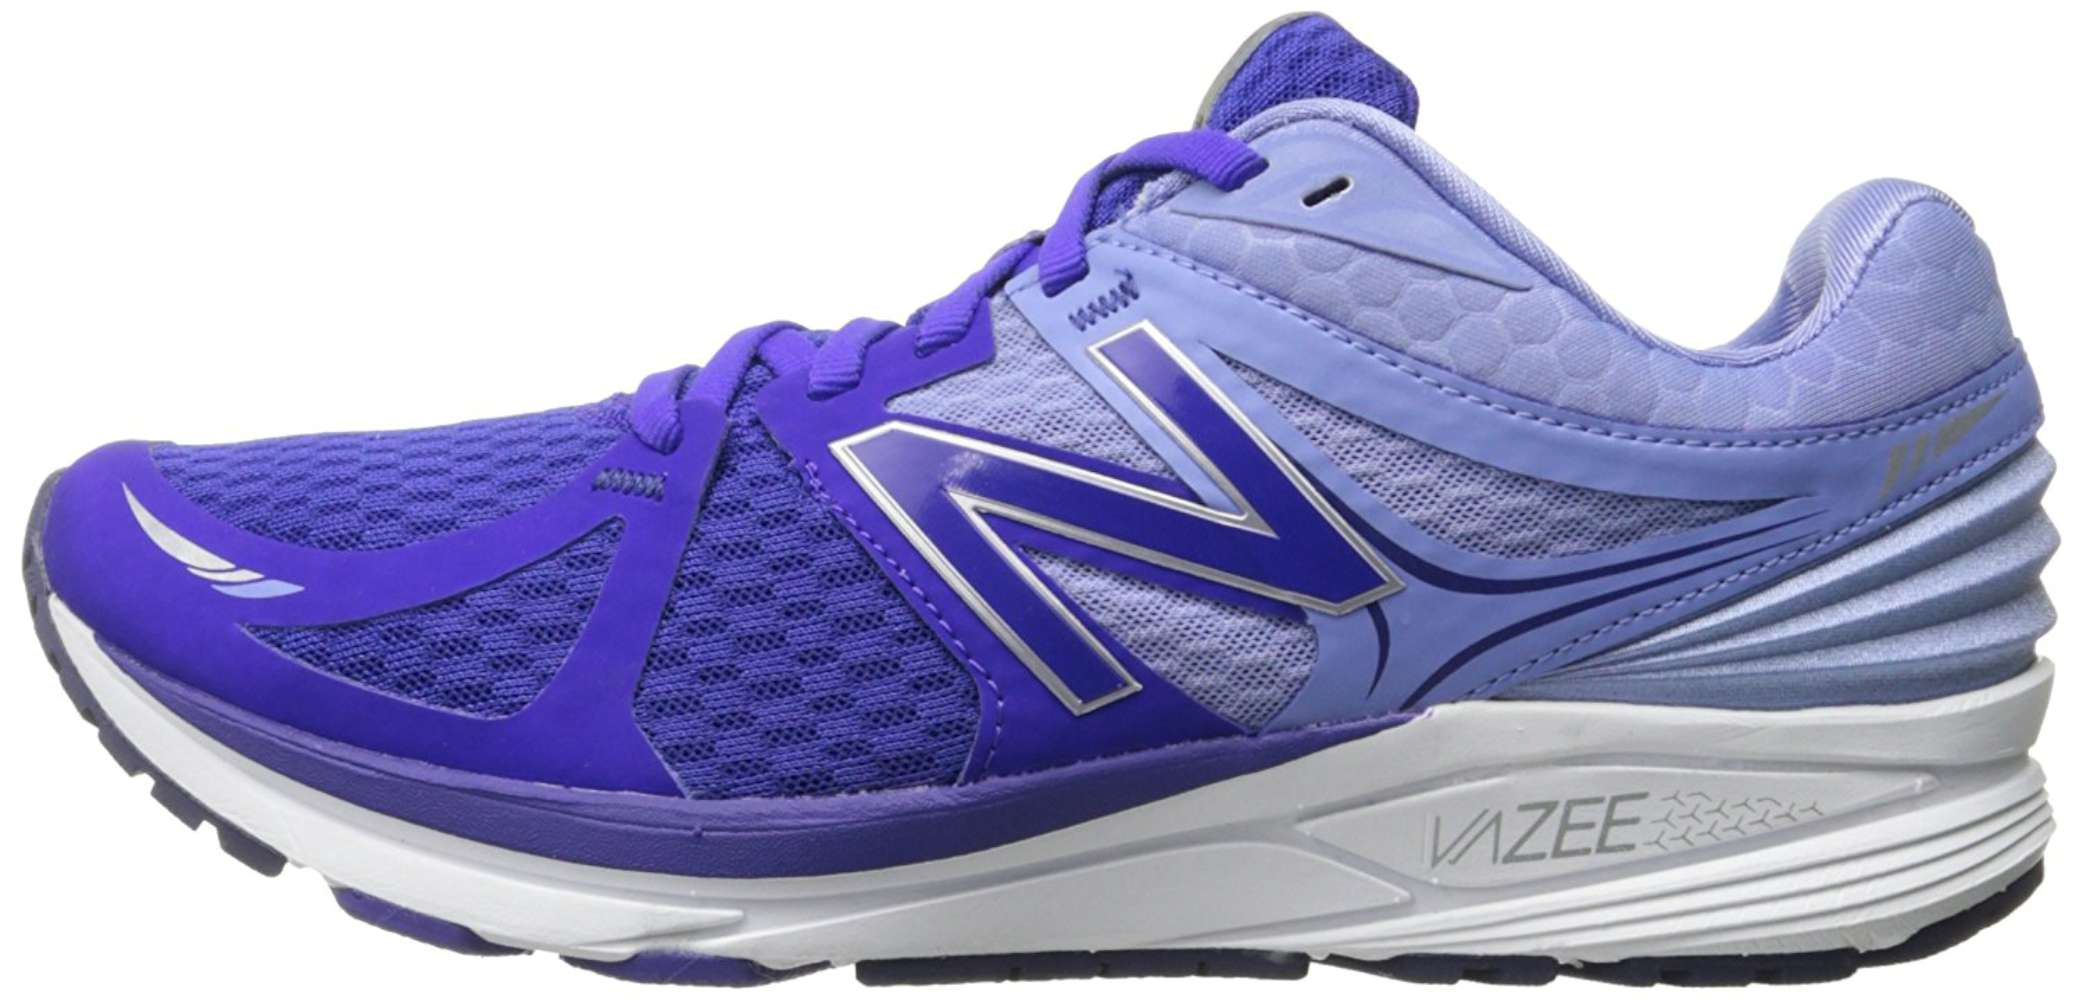 New Balance Womens WPRSMPR Low Top Lace Up Tennis Dark Purple/White Size 5.0